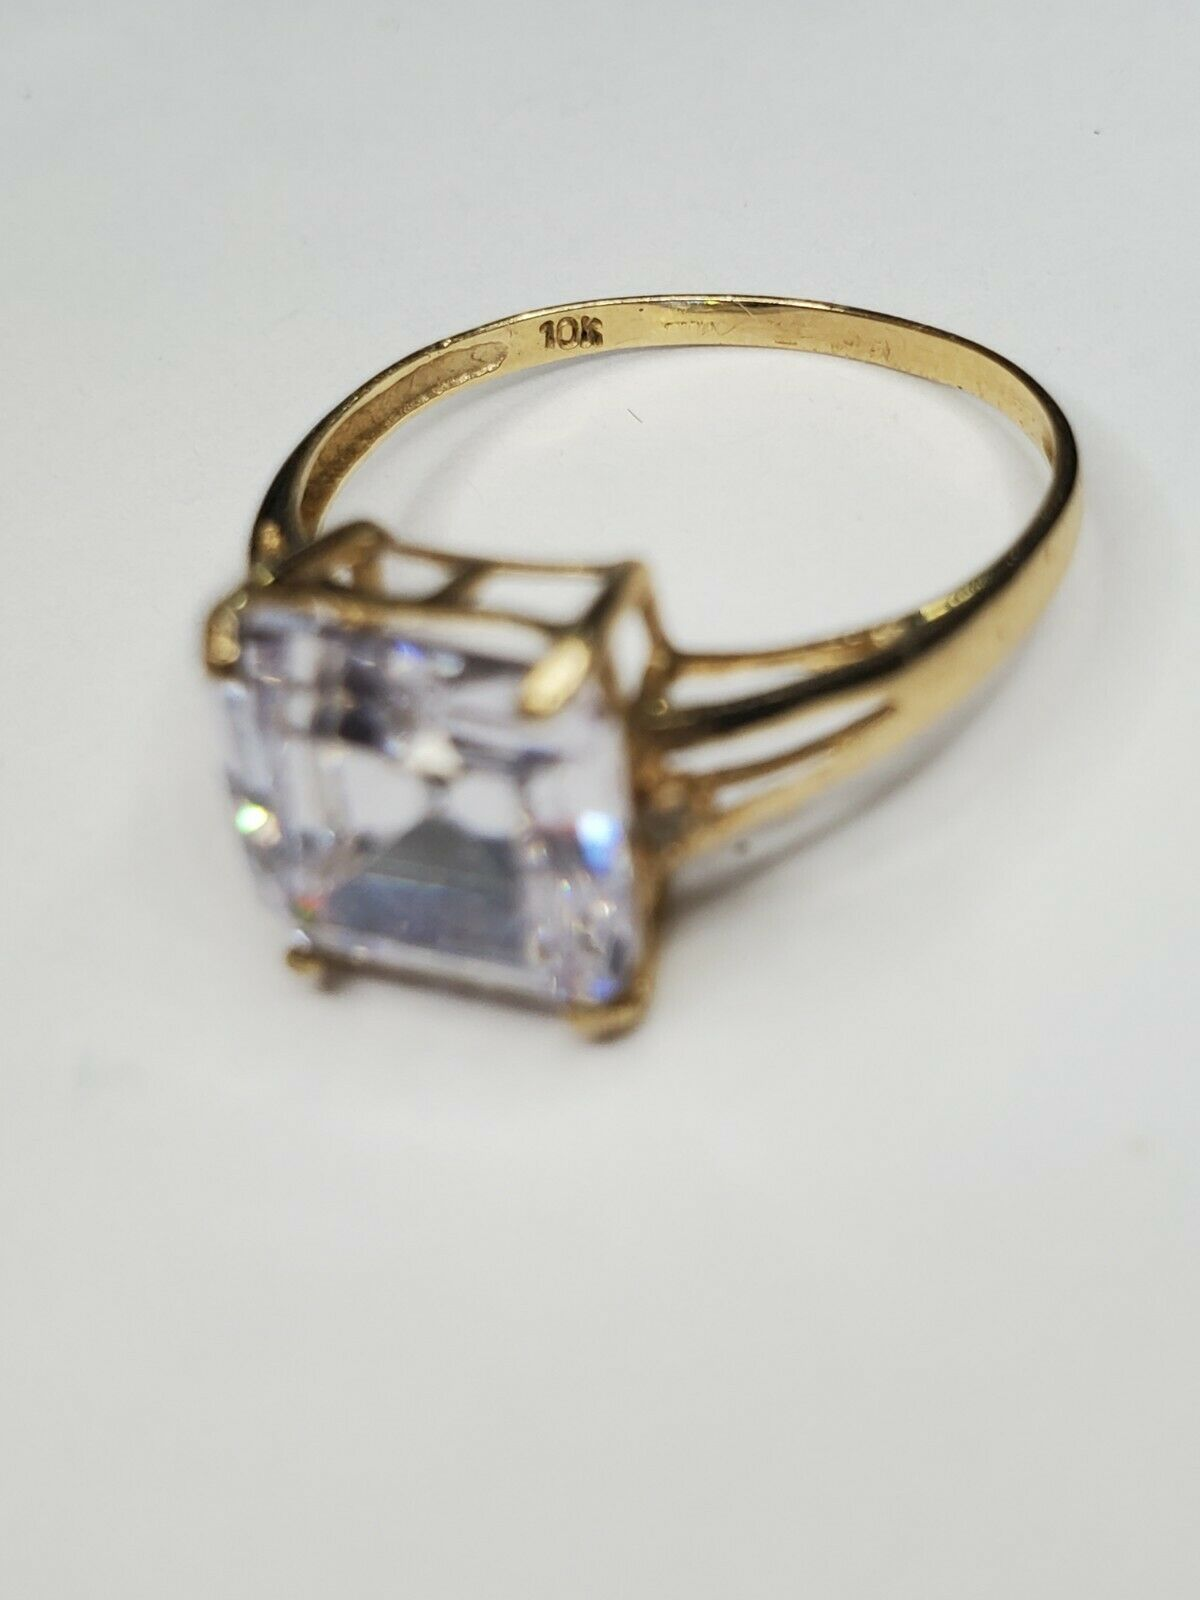 Solid 10k Gold Ring Solitaire Princess Cut  - image 2